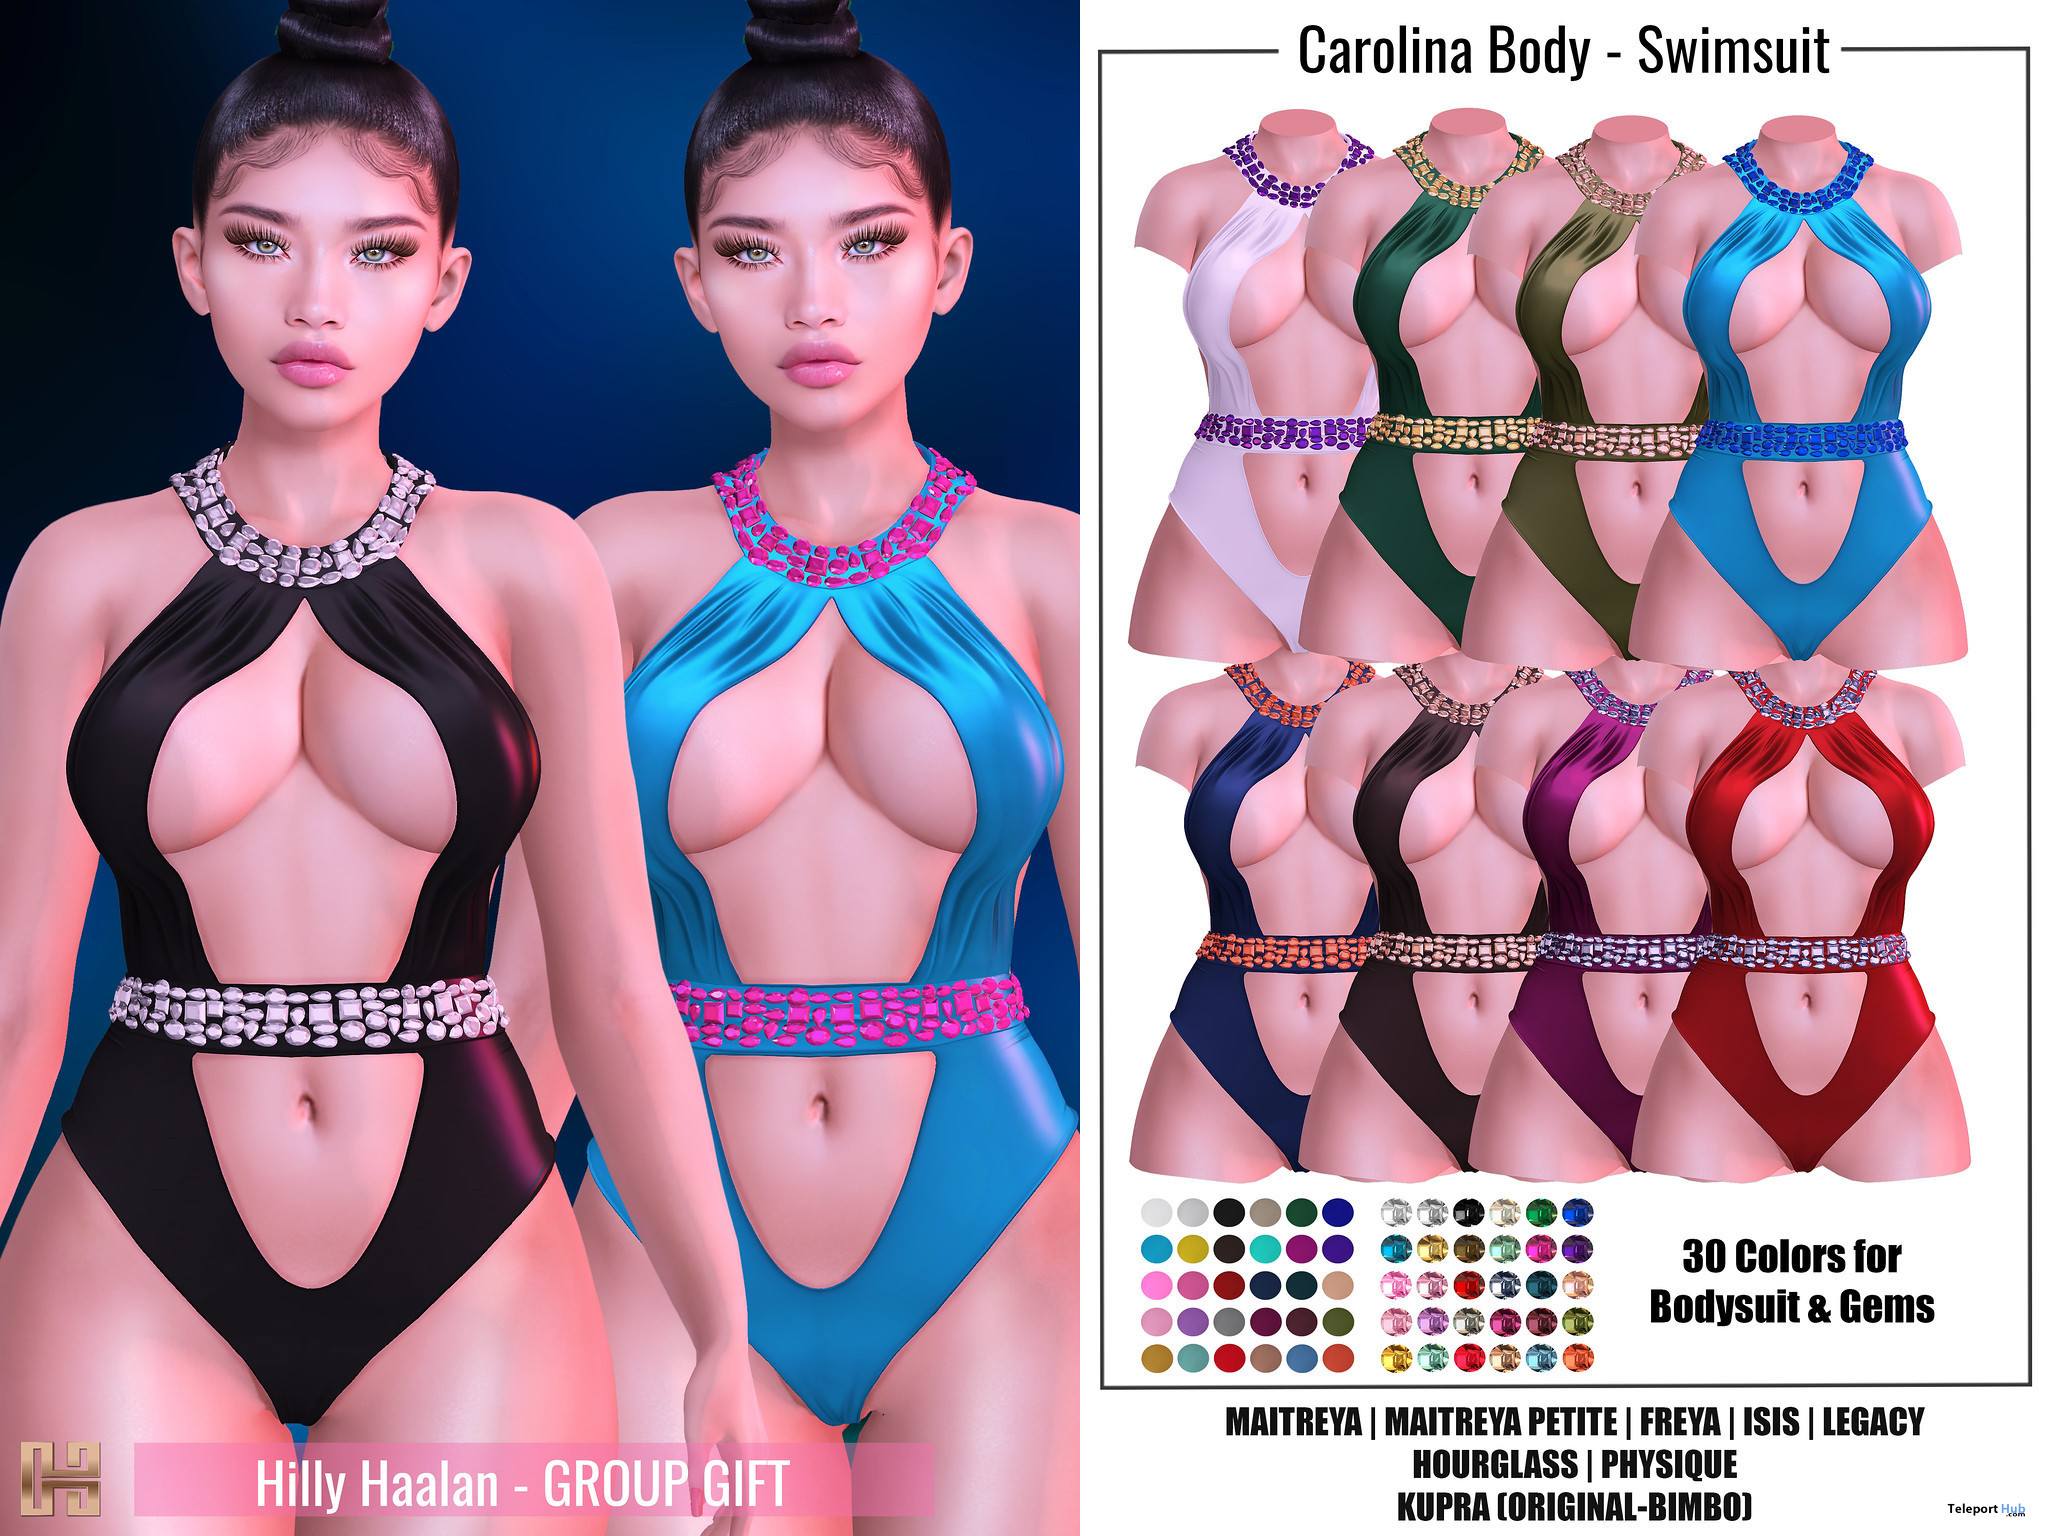 Carolina Bodysuit Swimsuit Fatpack August 2021 Group Gift by Hilly Haalan - Teleport Hub - teleporthub.com